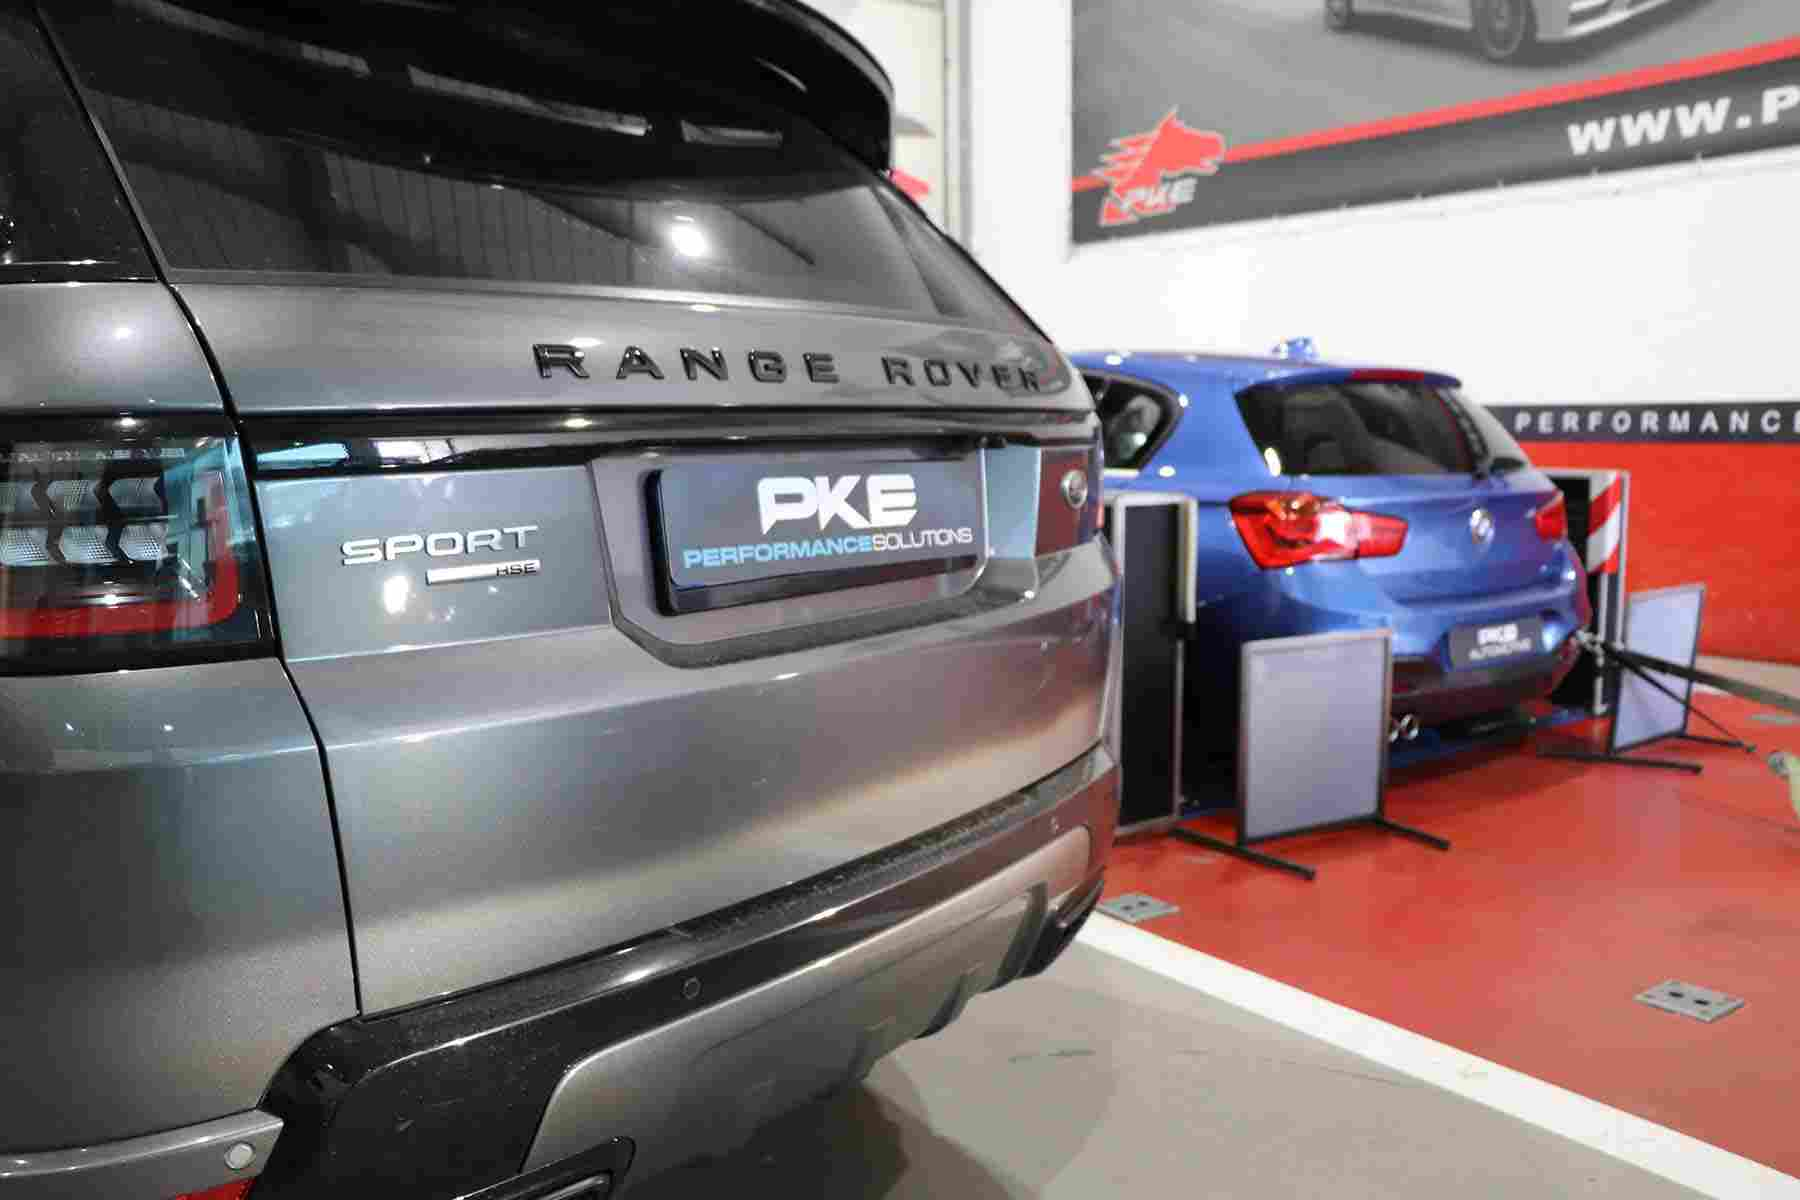 pke_rangebmw_slider